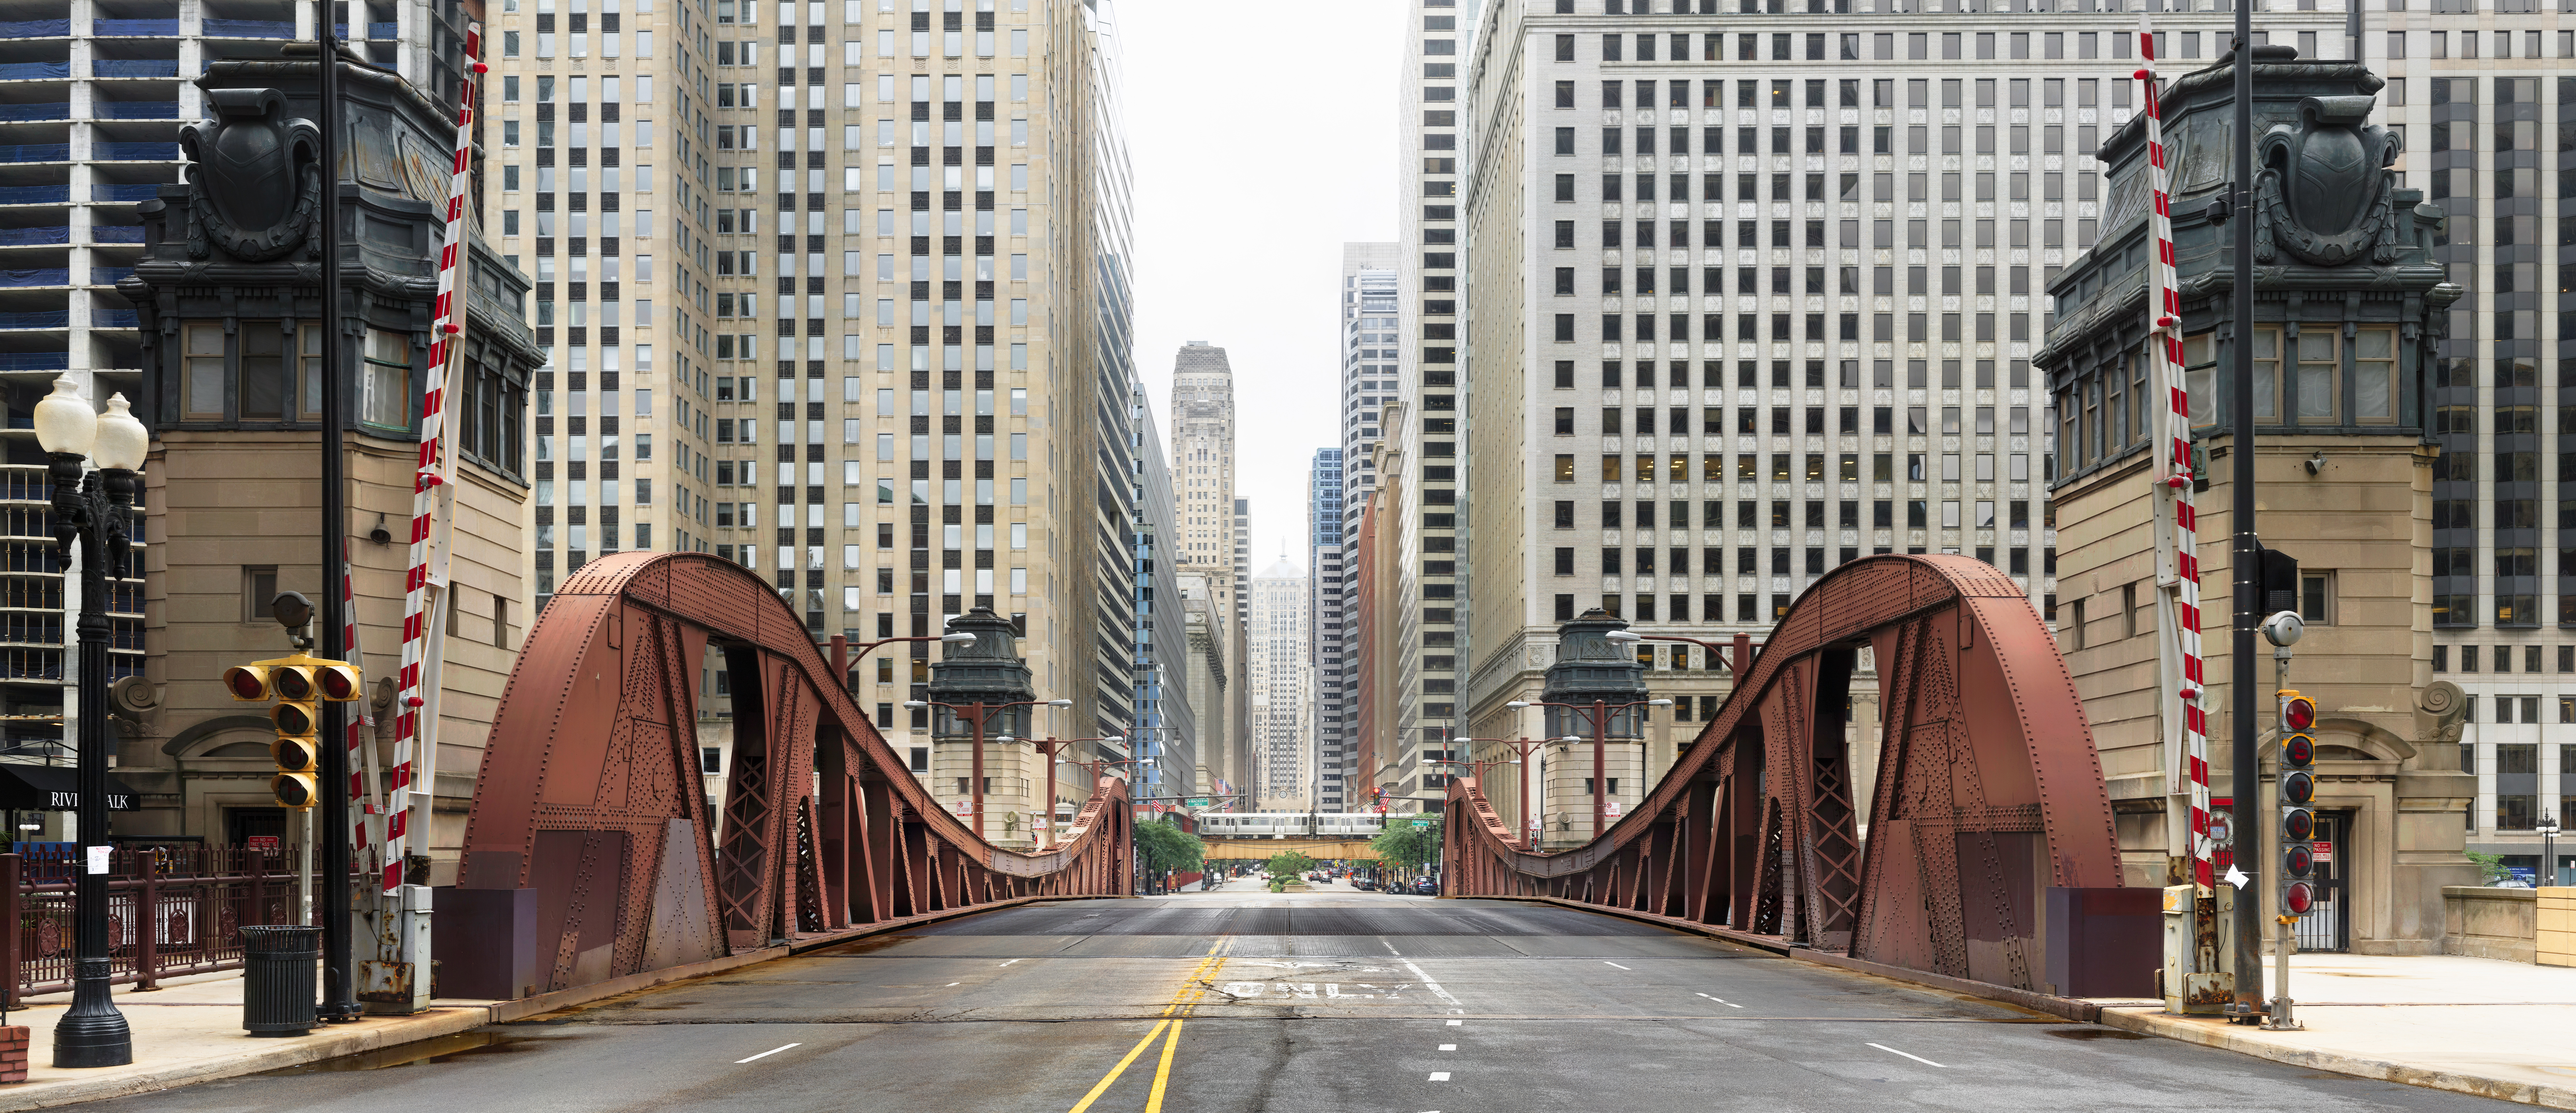 A view down a metal bridge leading to a dense urban street with glass and stone skyscrapers on either side.